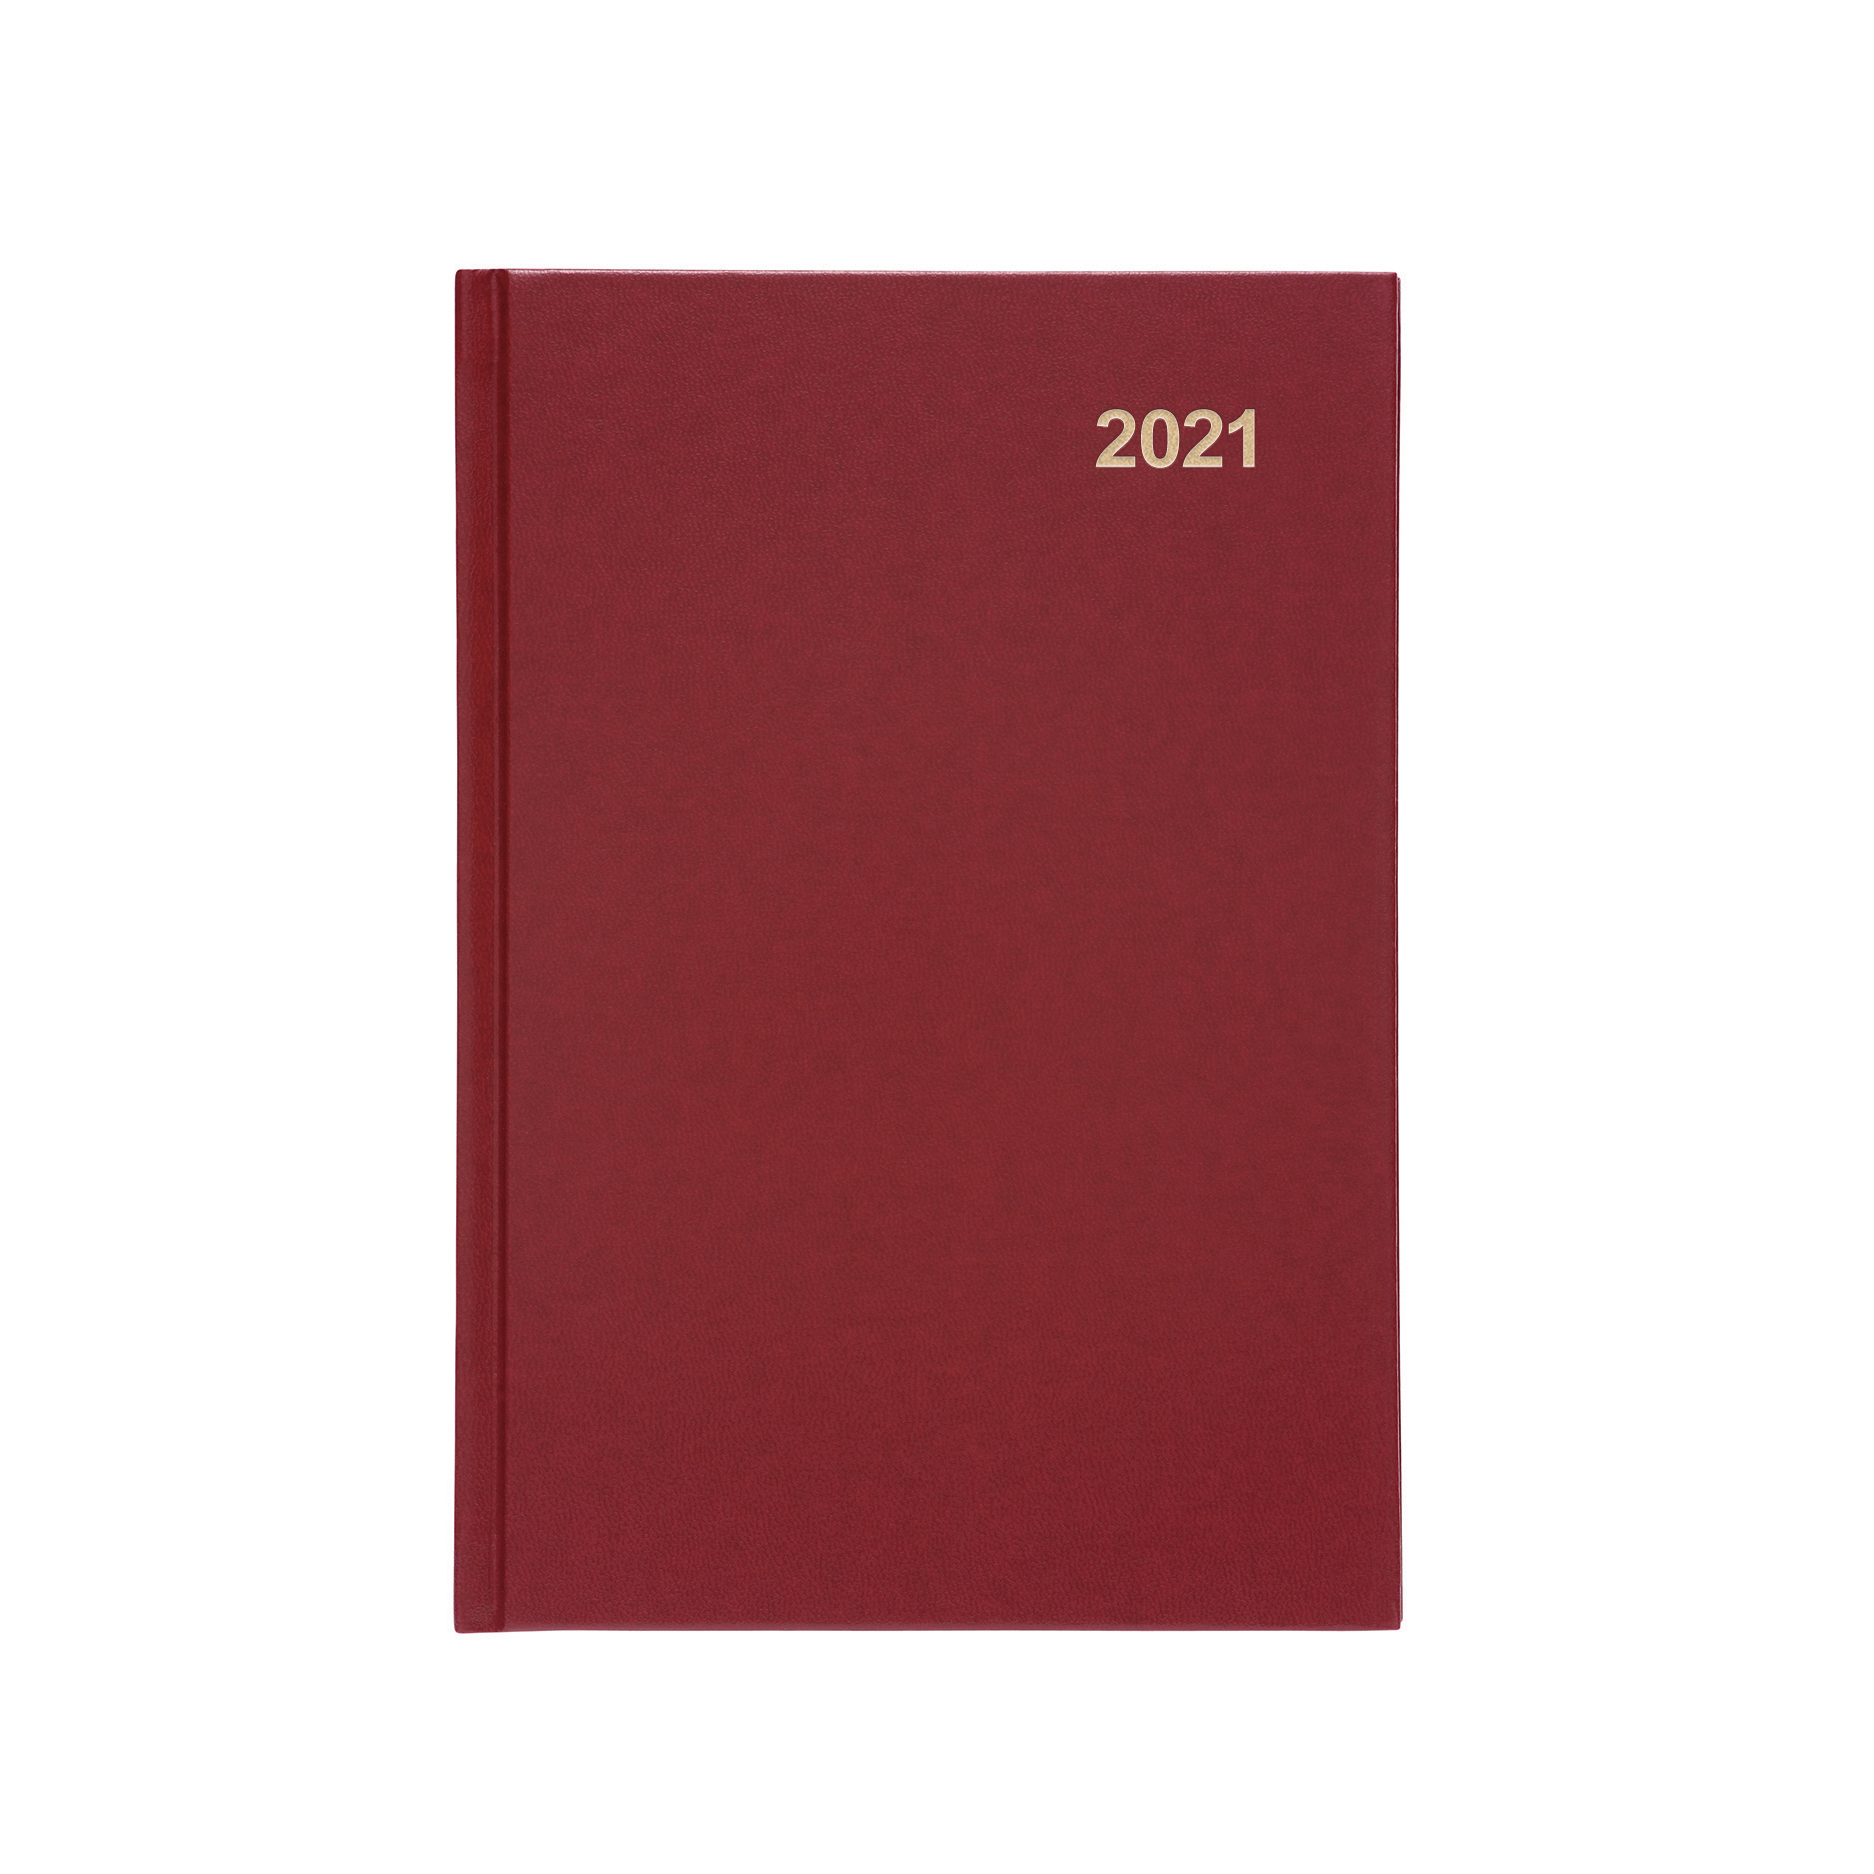 Diaries or refills 5 Star Office 2021 Diary Week to View Casebound and Sewn Vinyl Coated Board A5 210x148mm Red